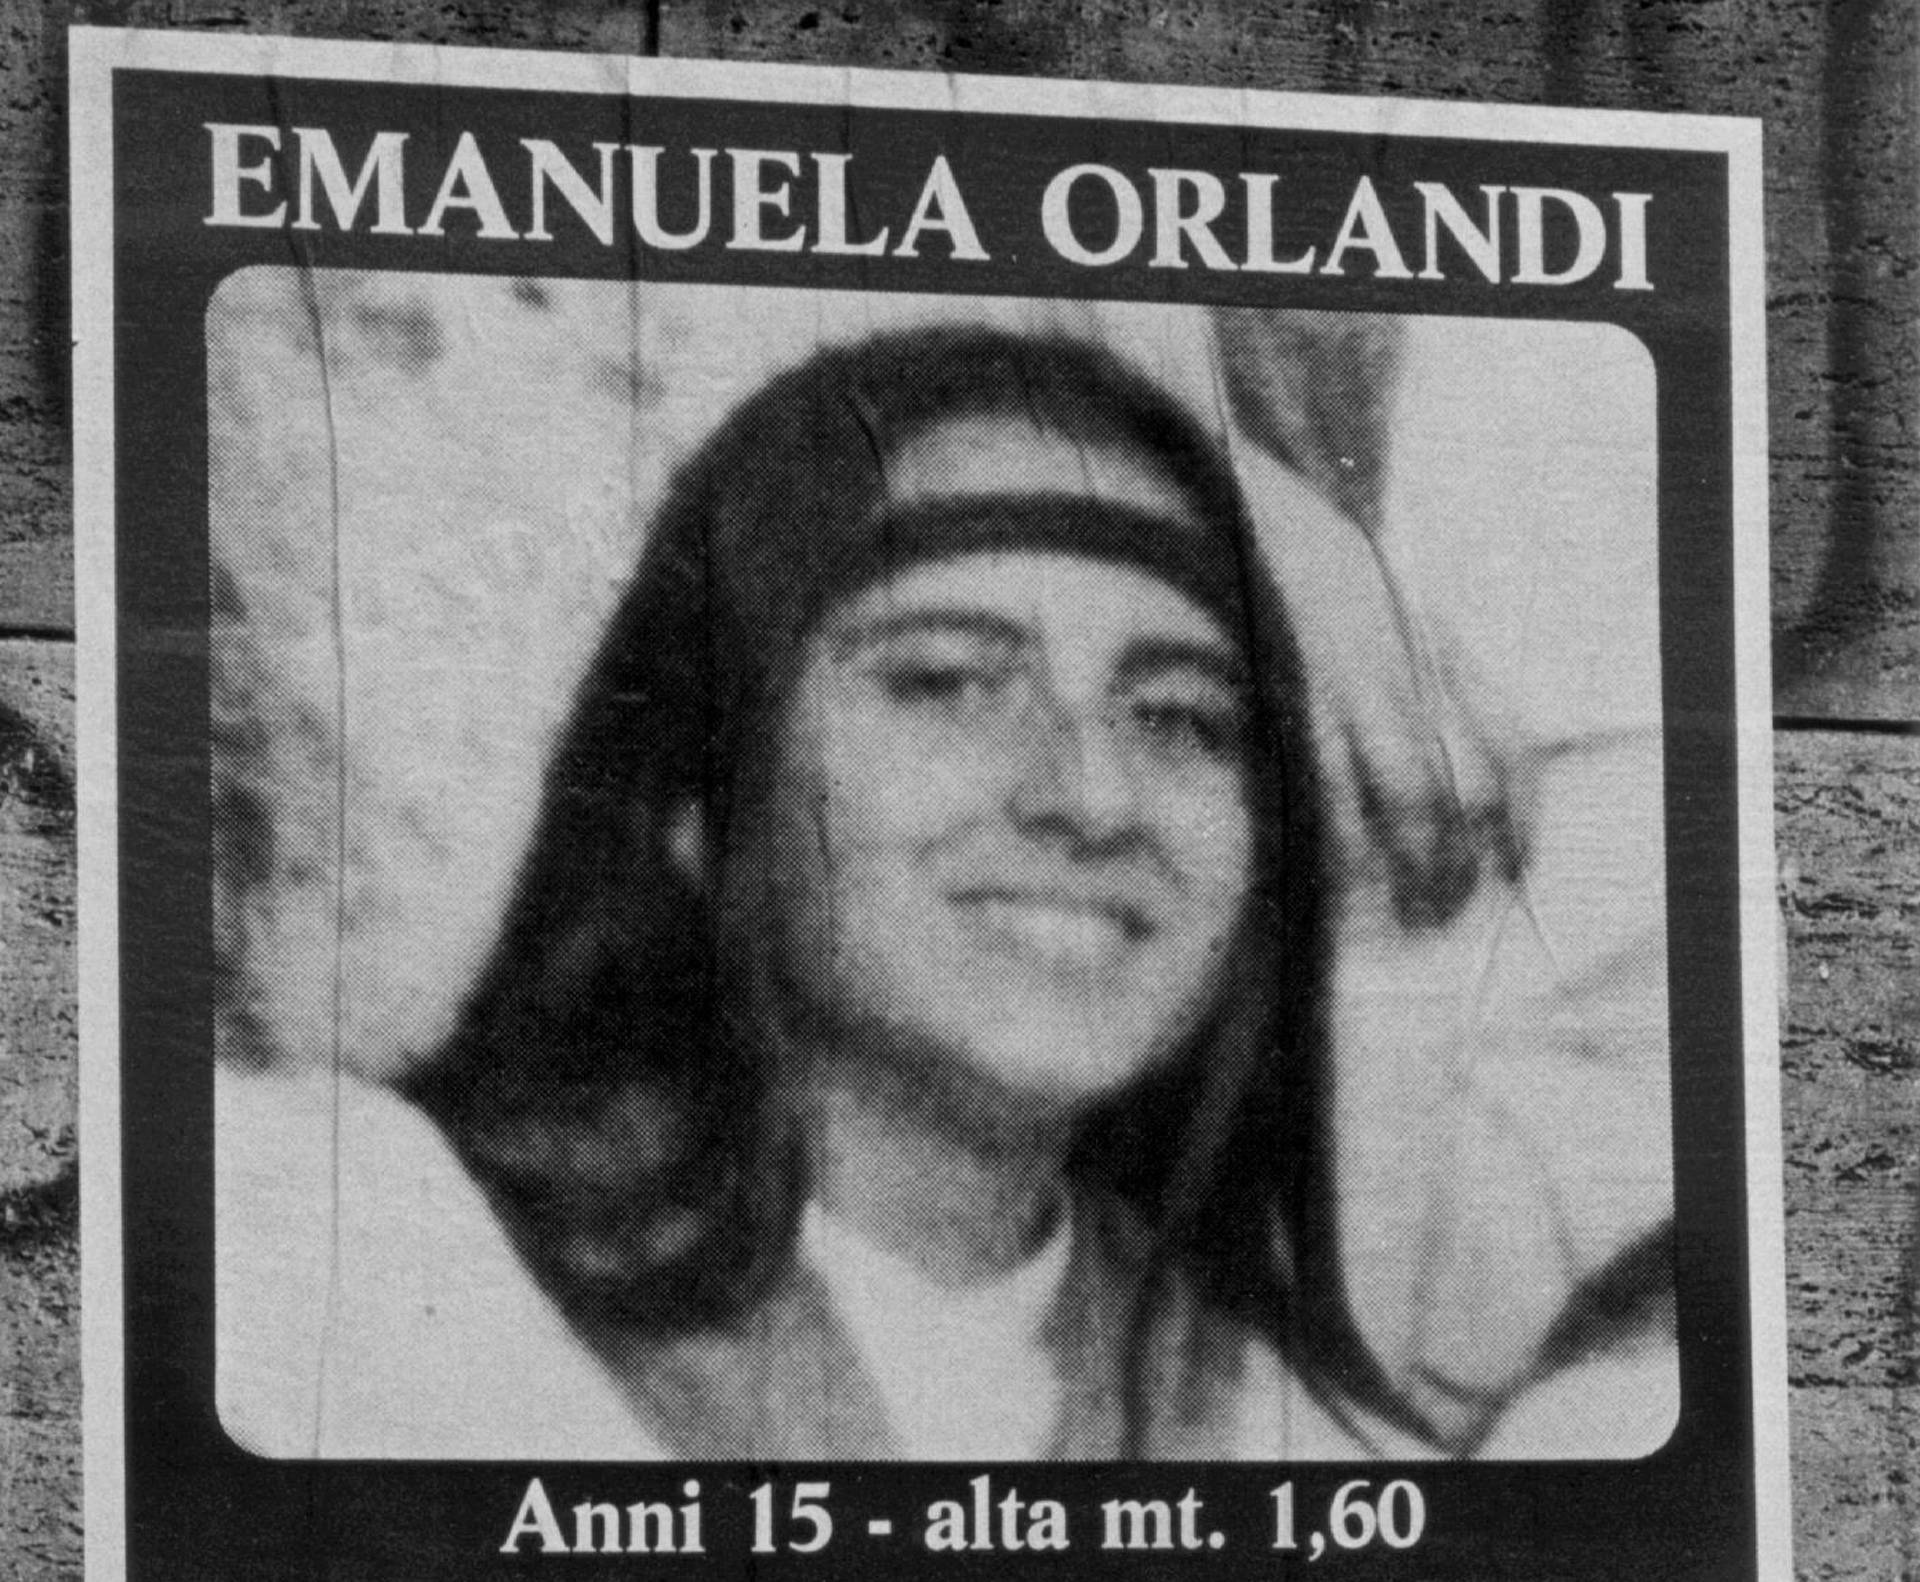 Graves to be opened in search for Emanuela Orlandi